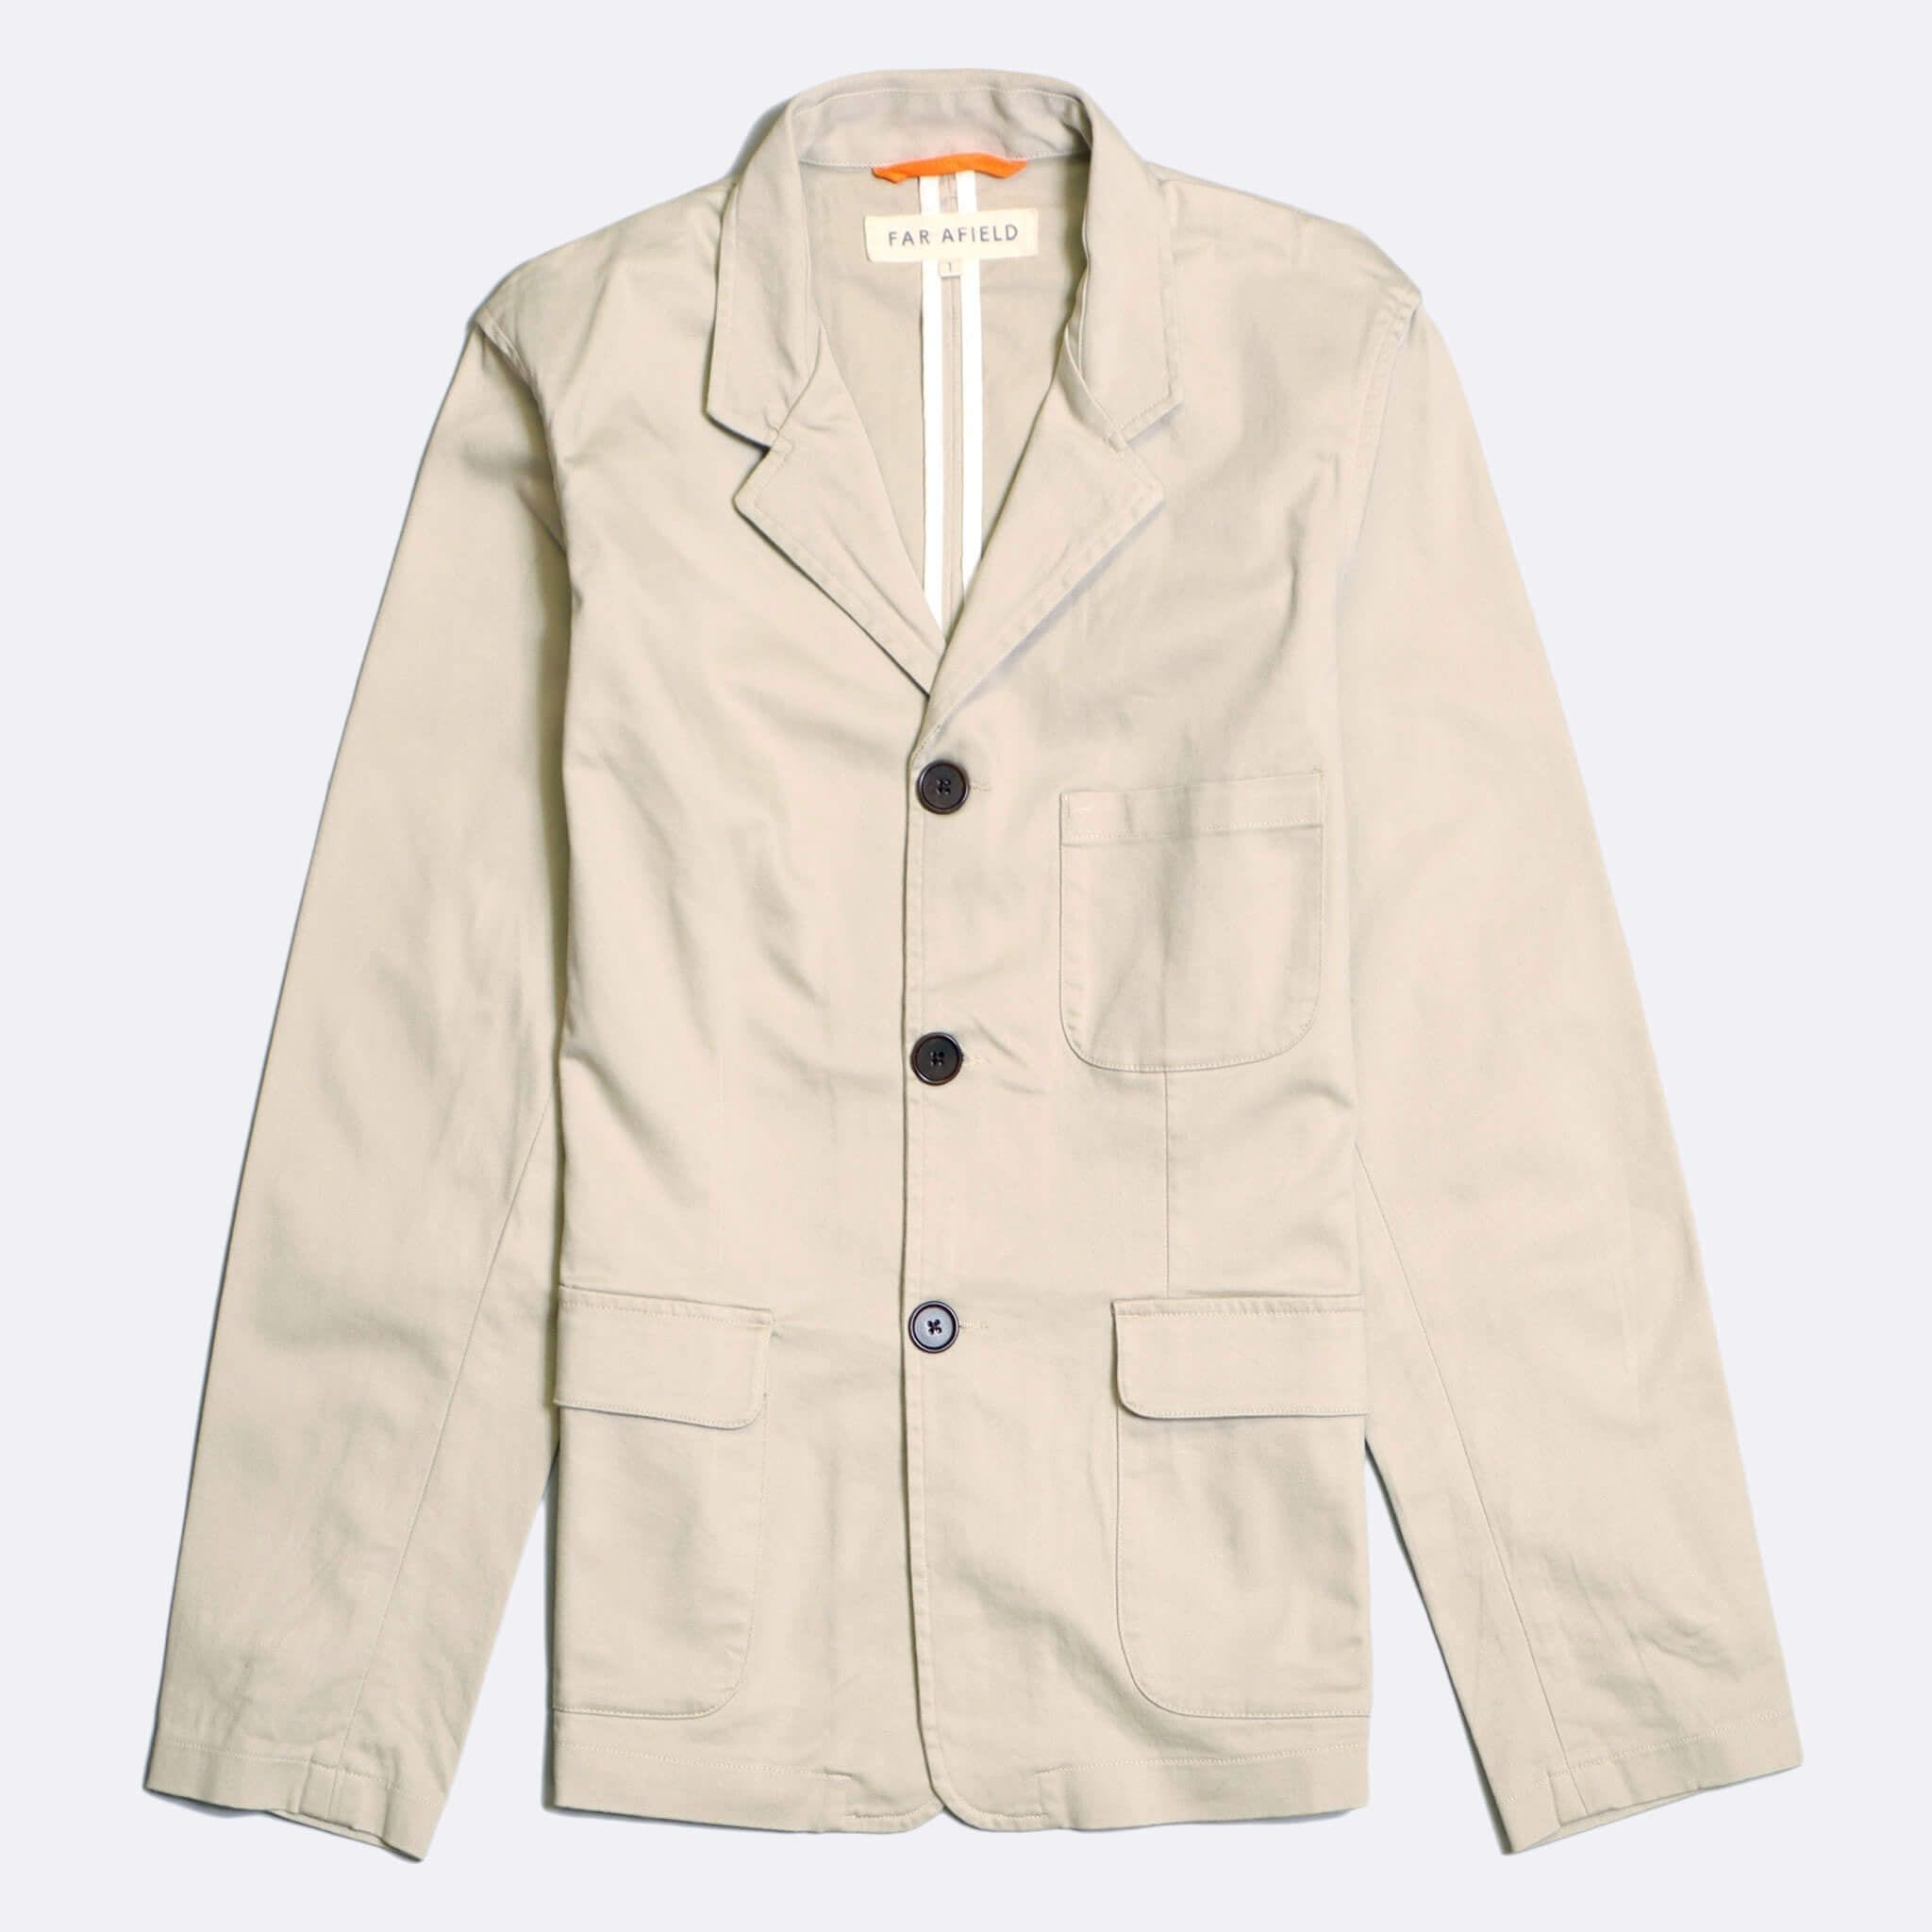 Far Afield Barbet Jacket a Pumice Stone BCI Cotton/Cotton Twill Fabric Work Blazer Smart Casual